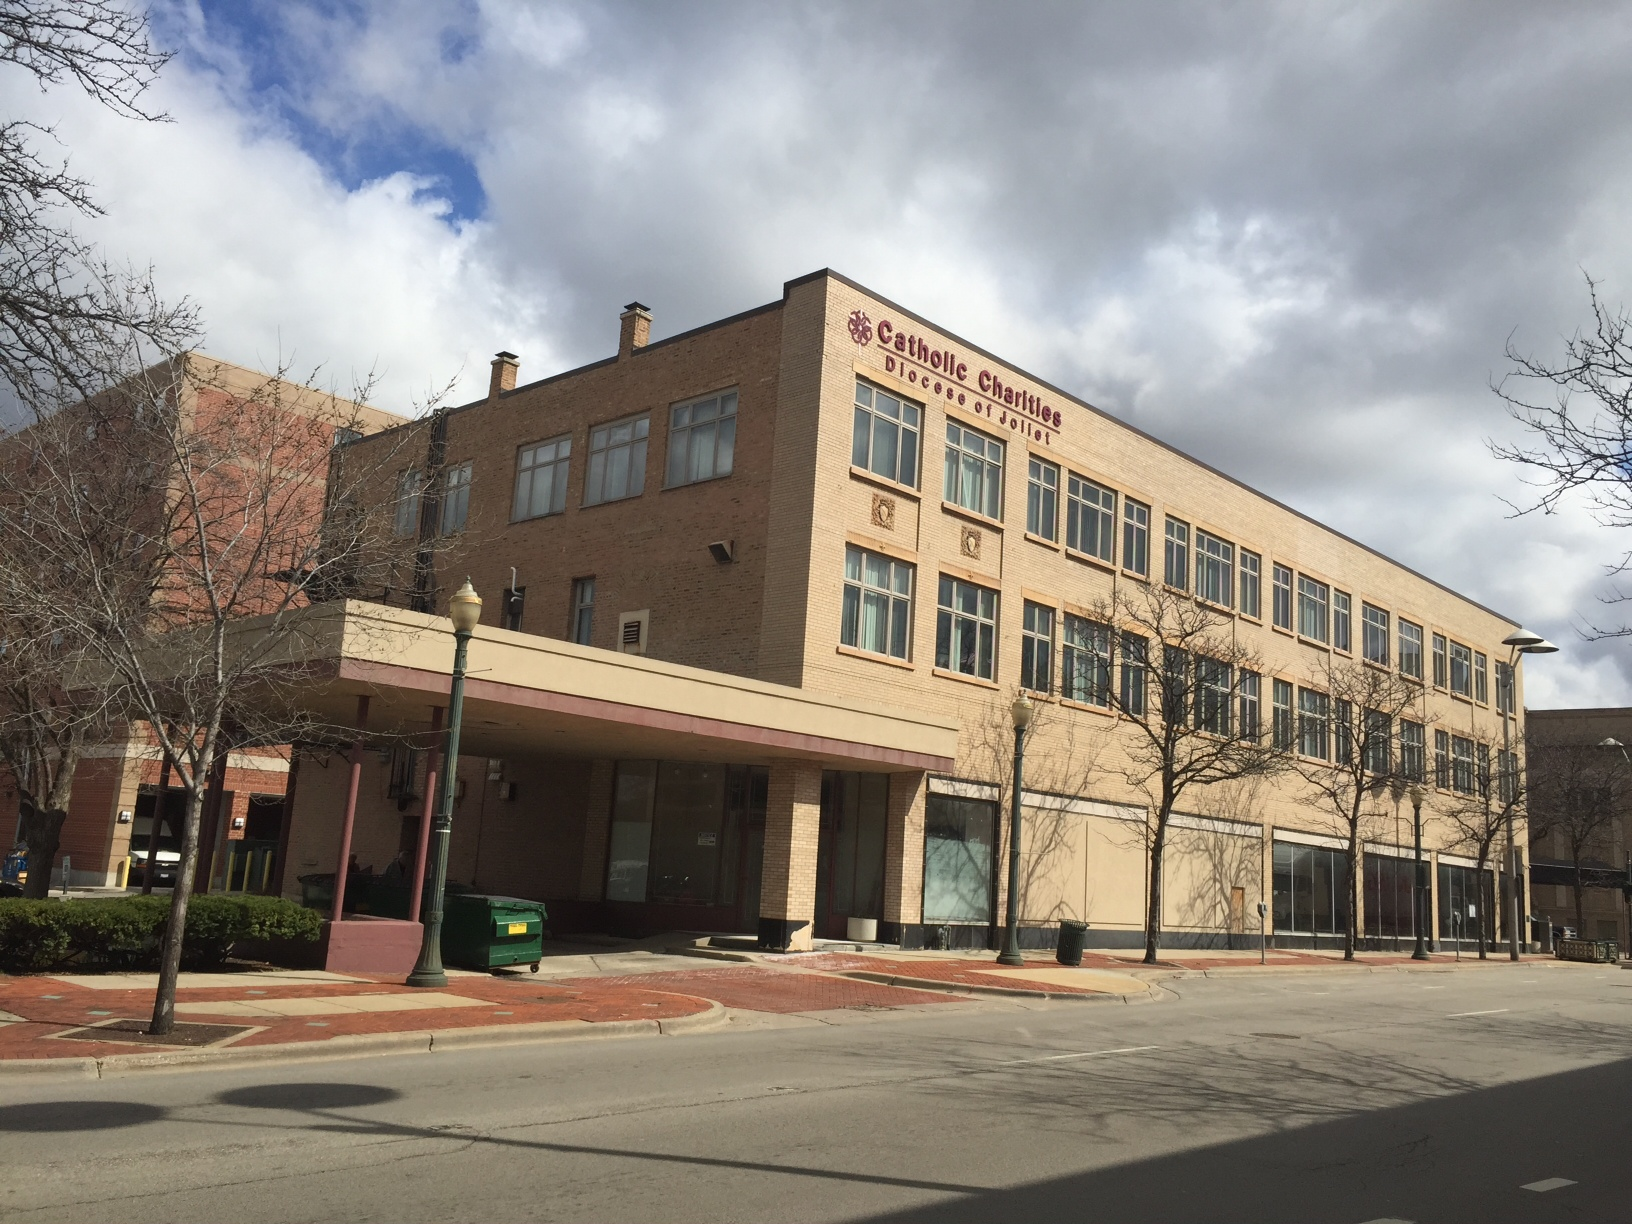 Patrick Commercial Real Estate Awarded Catholic Charities Disposition Assignment in Downtown Joliet, Illinois.-image